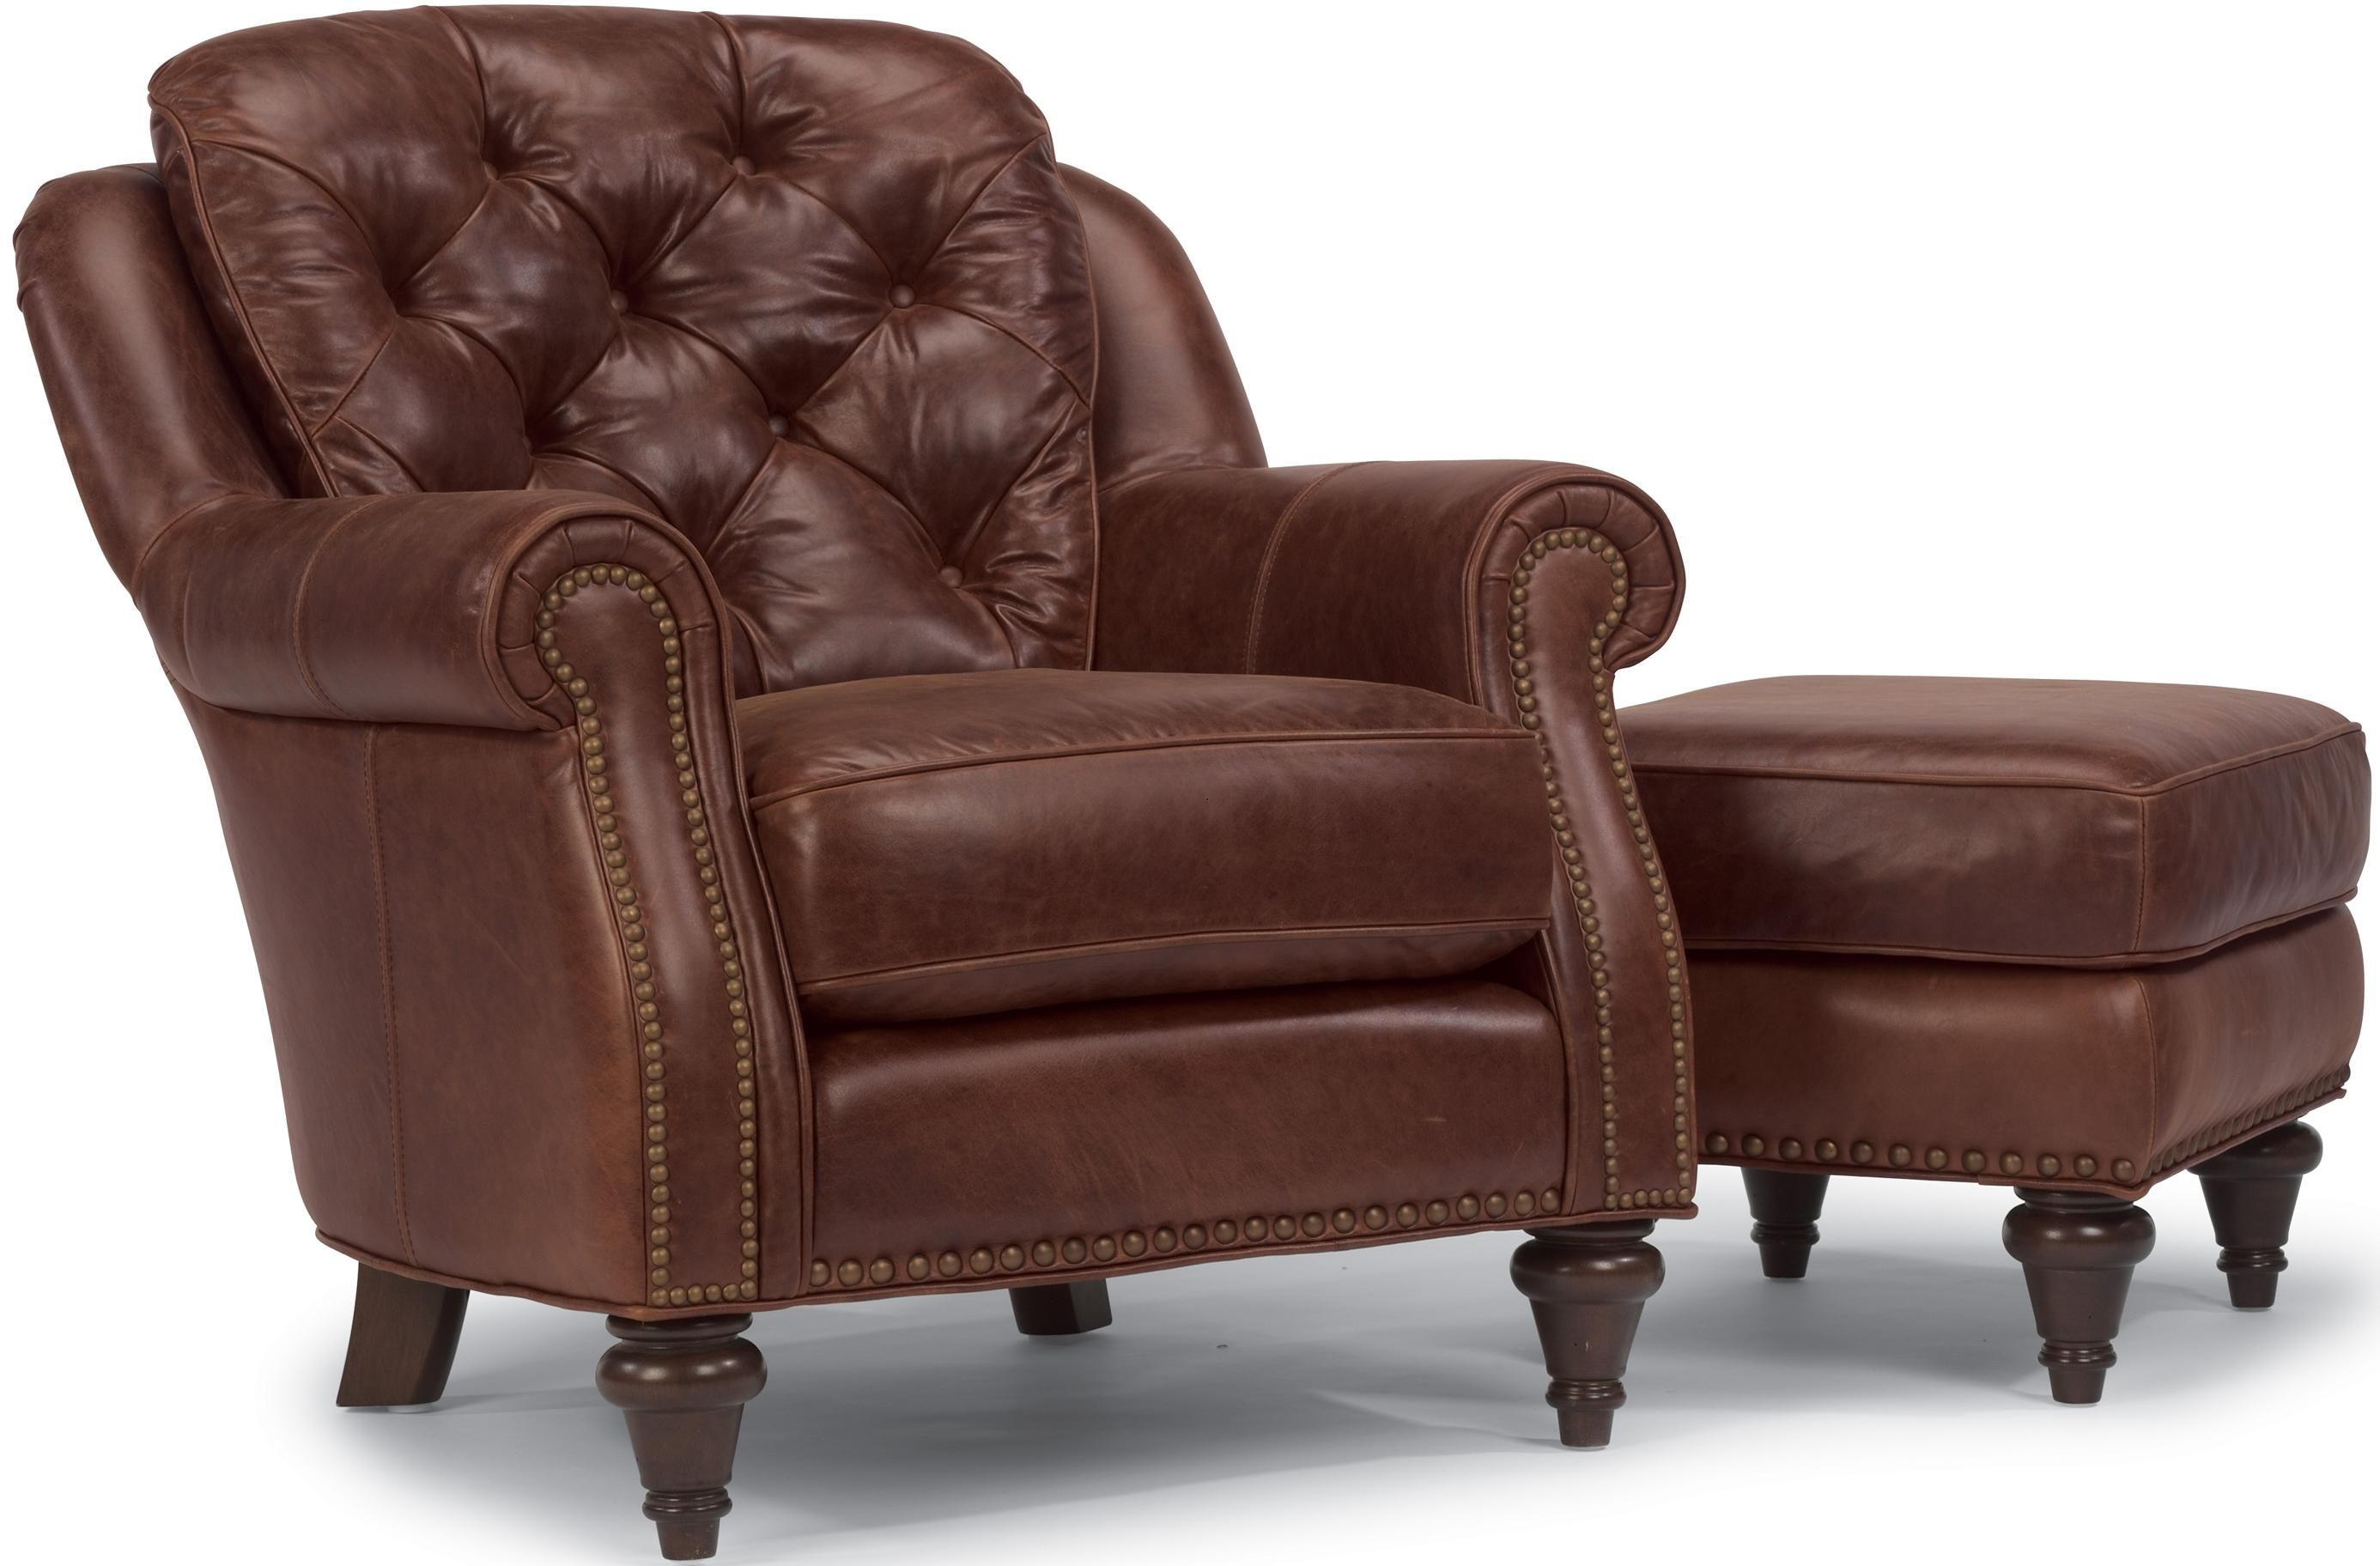 Latitudes Caledonia Chair and Ottoman by Flexsteel